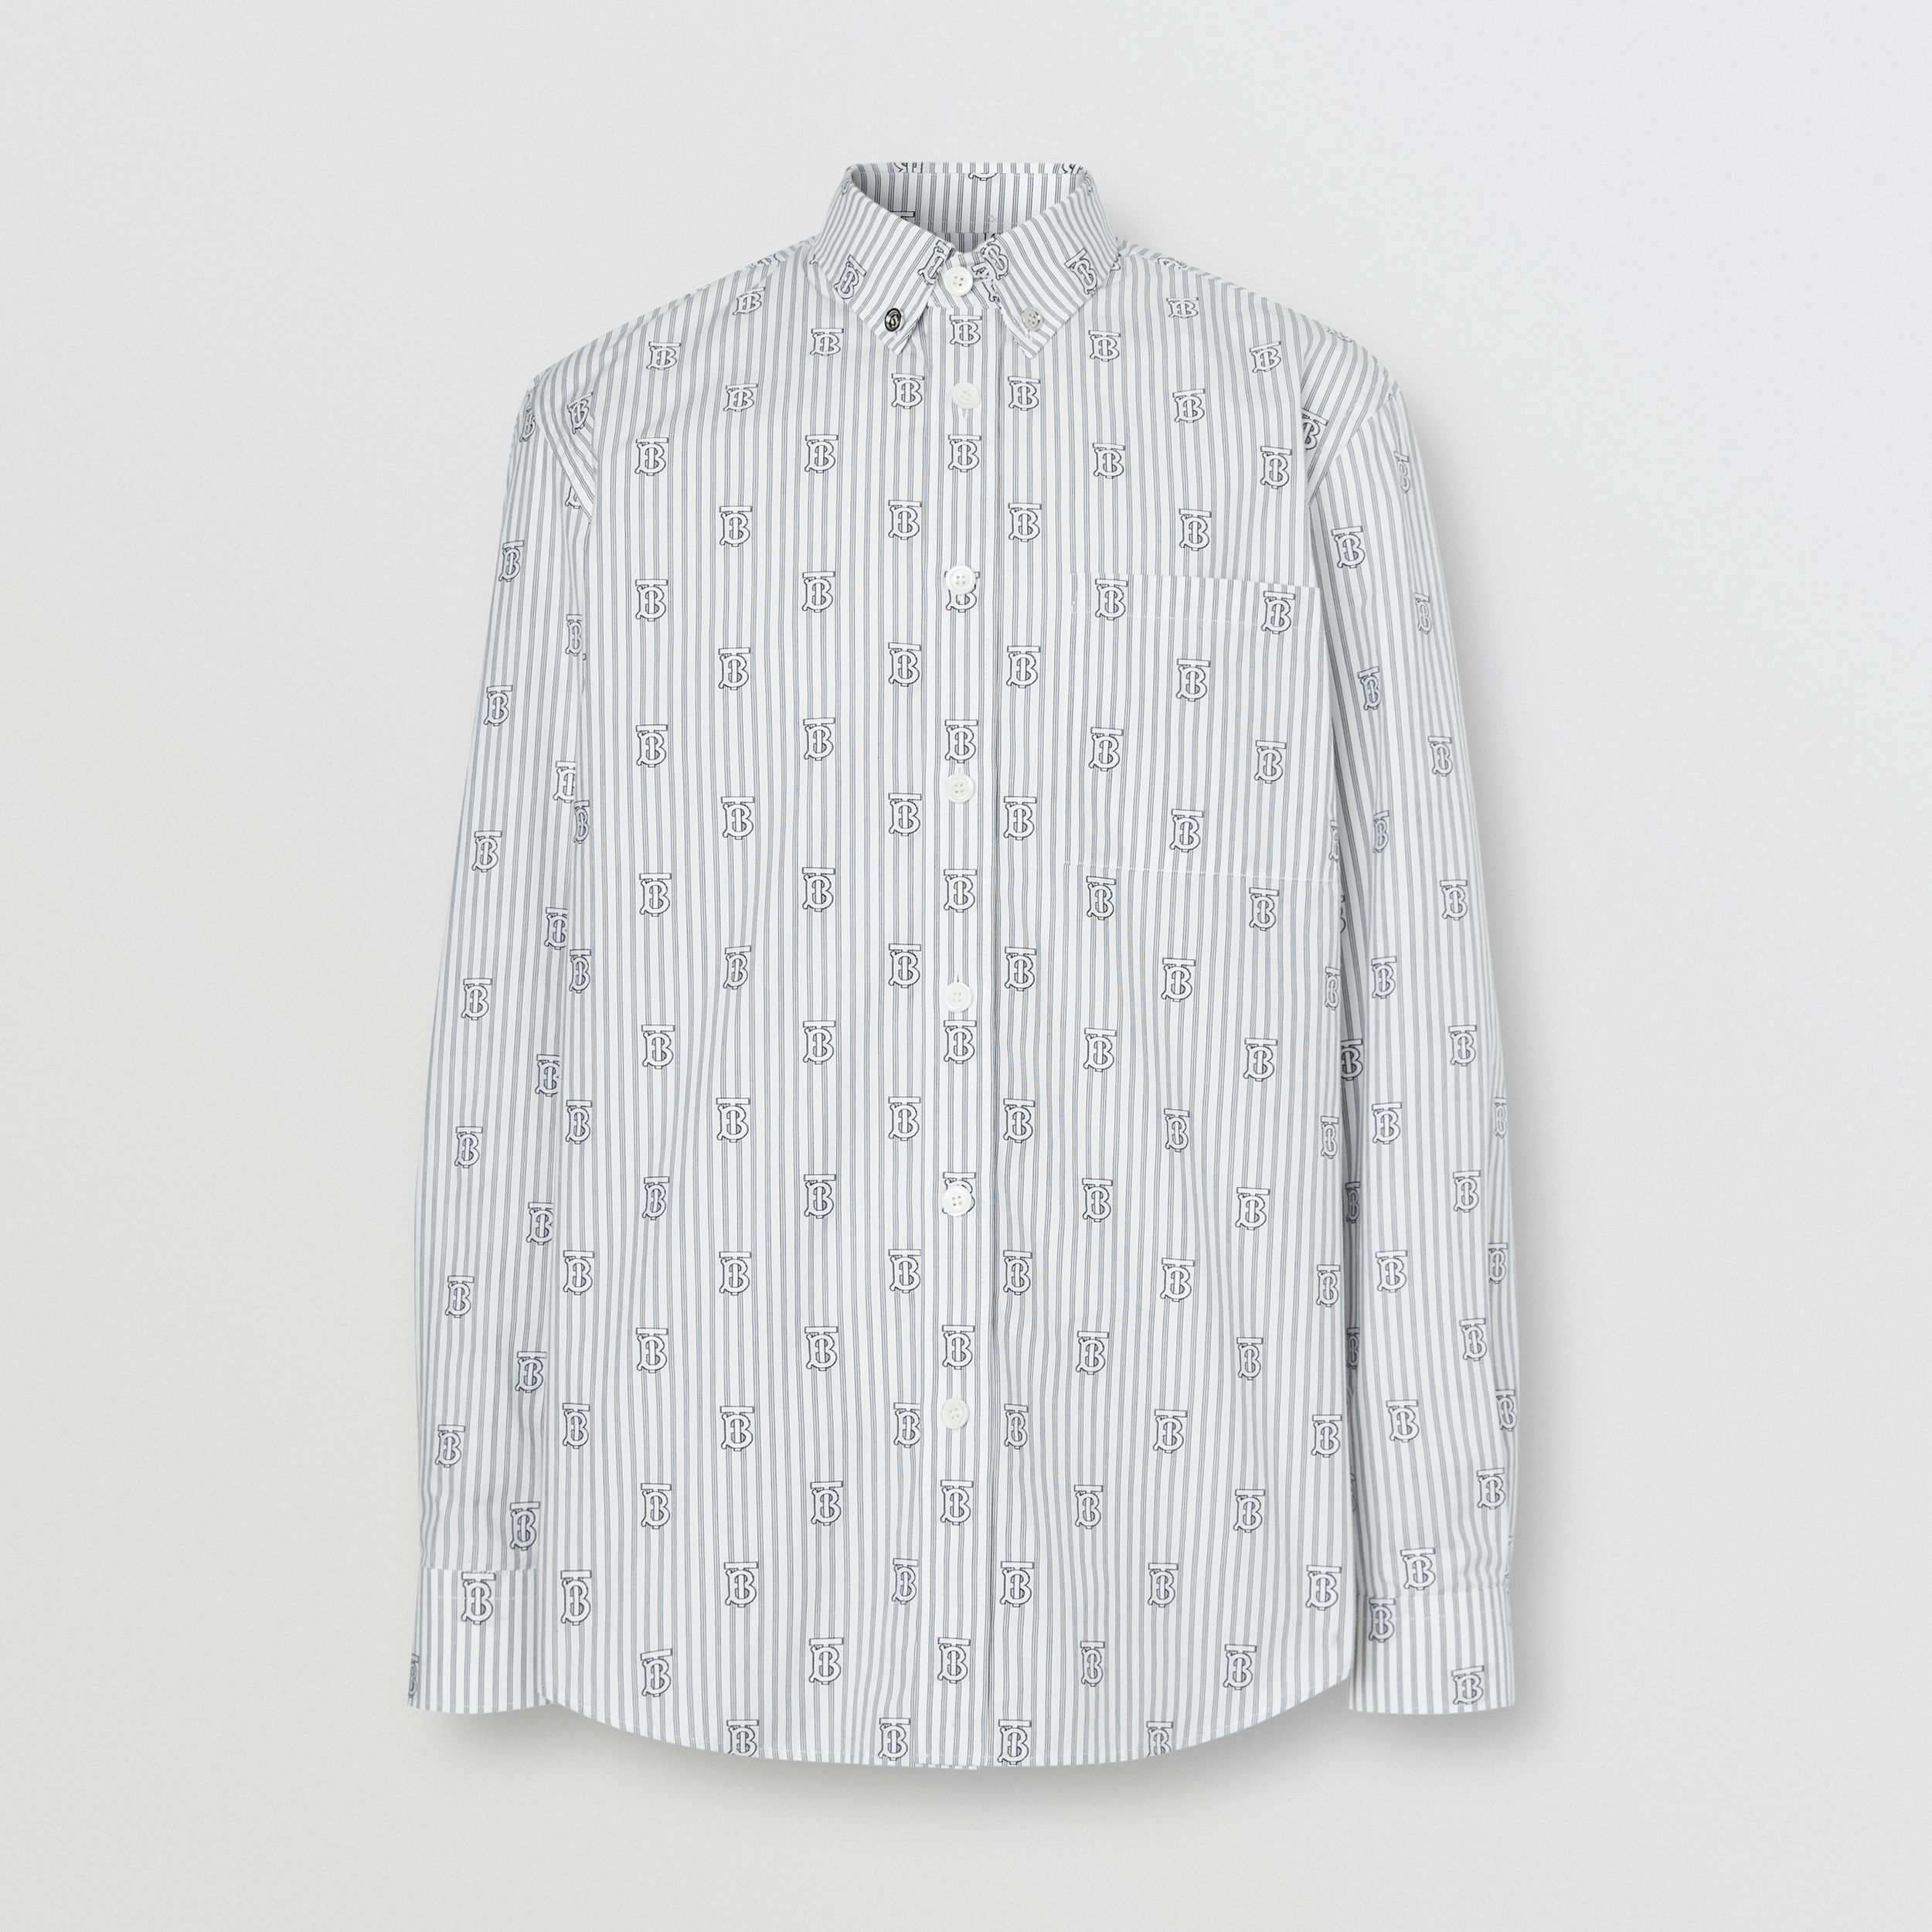 Slim Fit Monogram Motif Pinstriped Cotton Shirt in White - Men | Burberry - 4